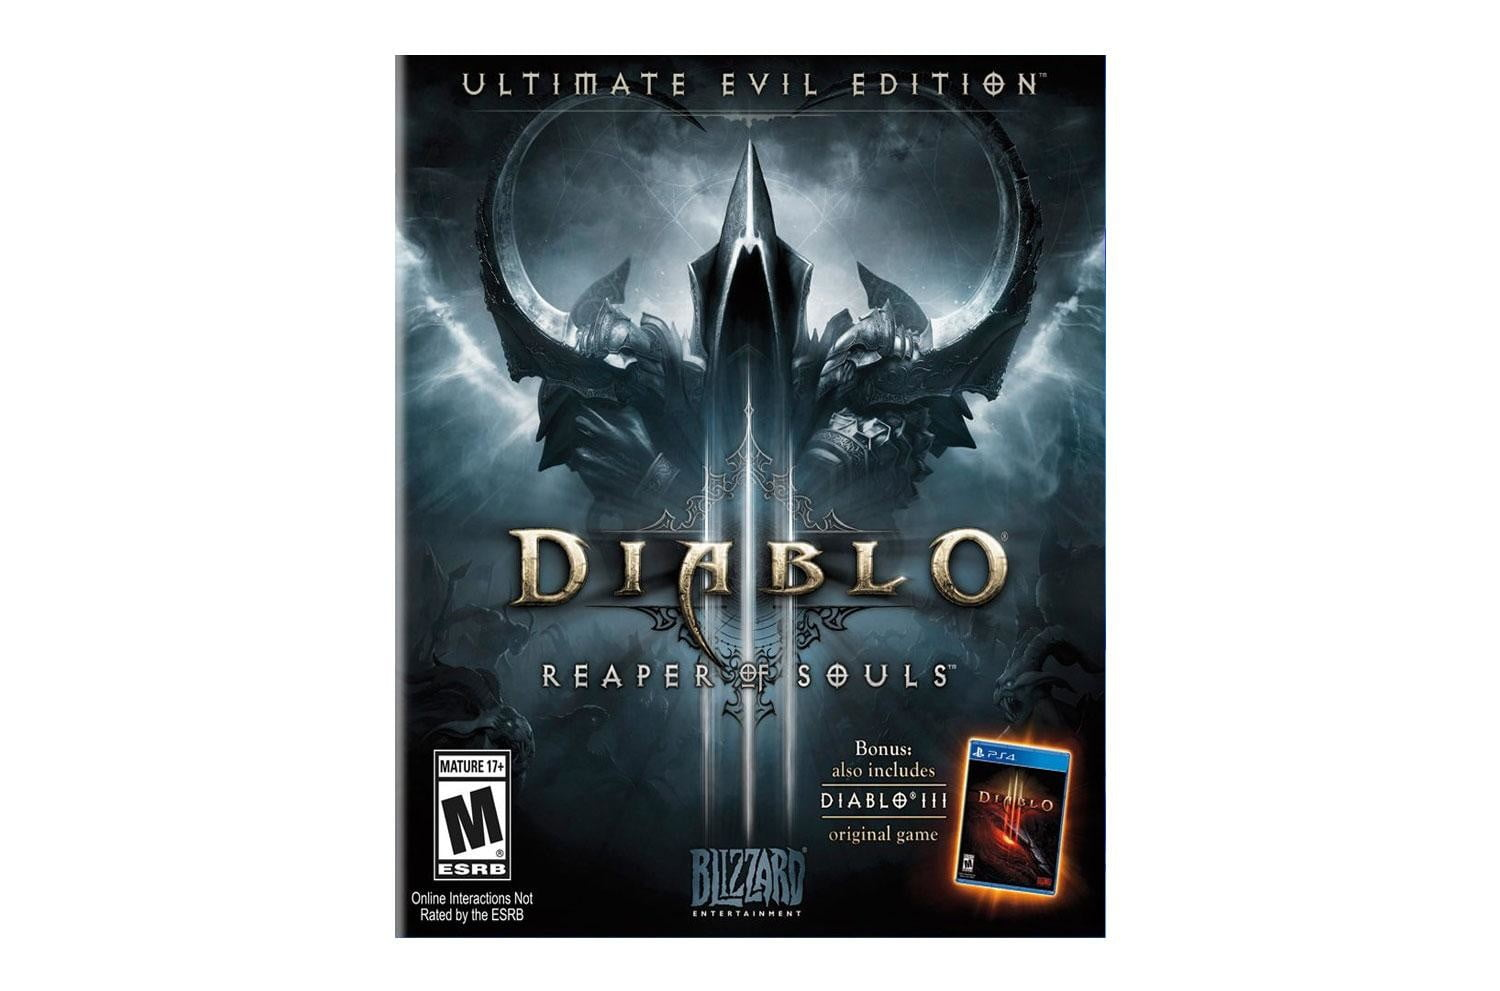 Diablo-3-Ultimate-Evil-Edition-cover-art